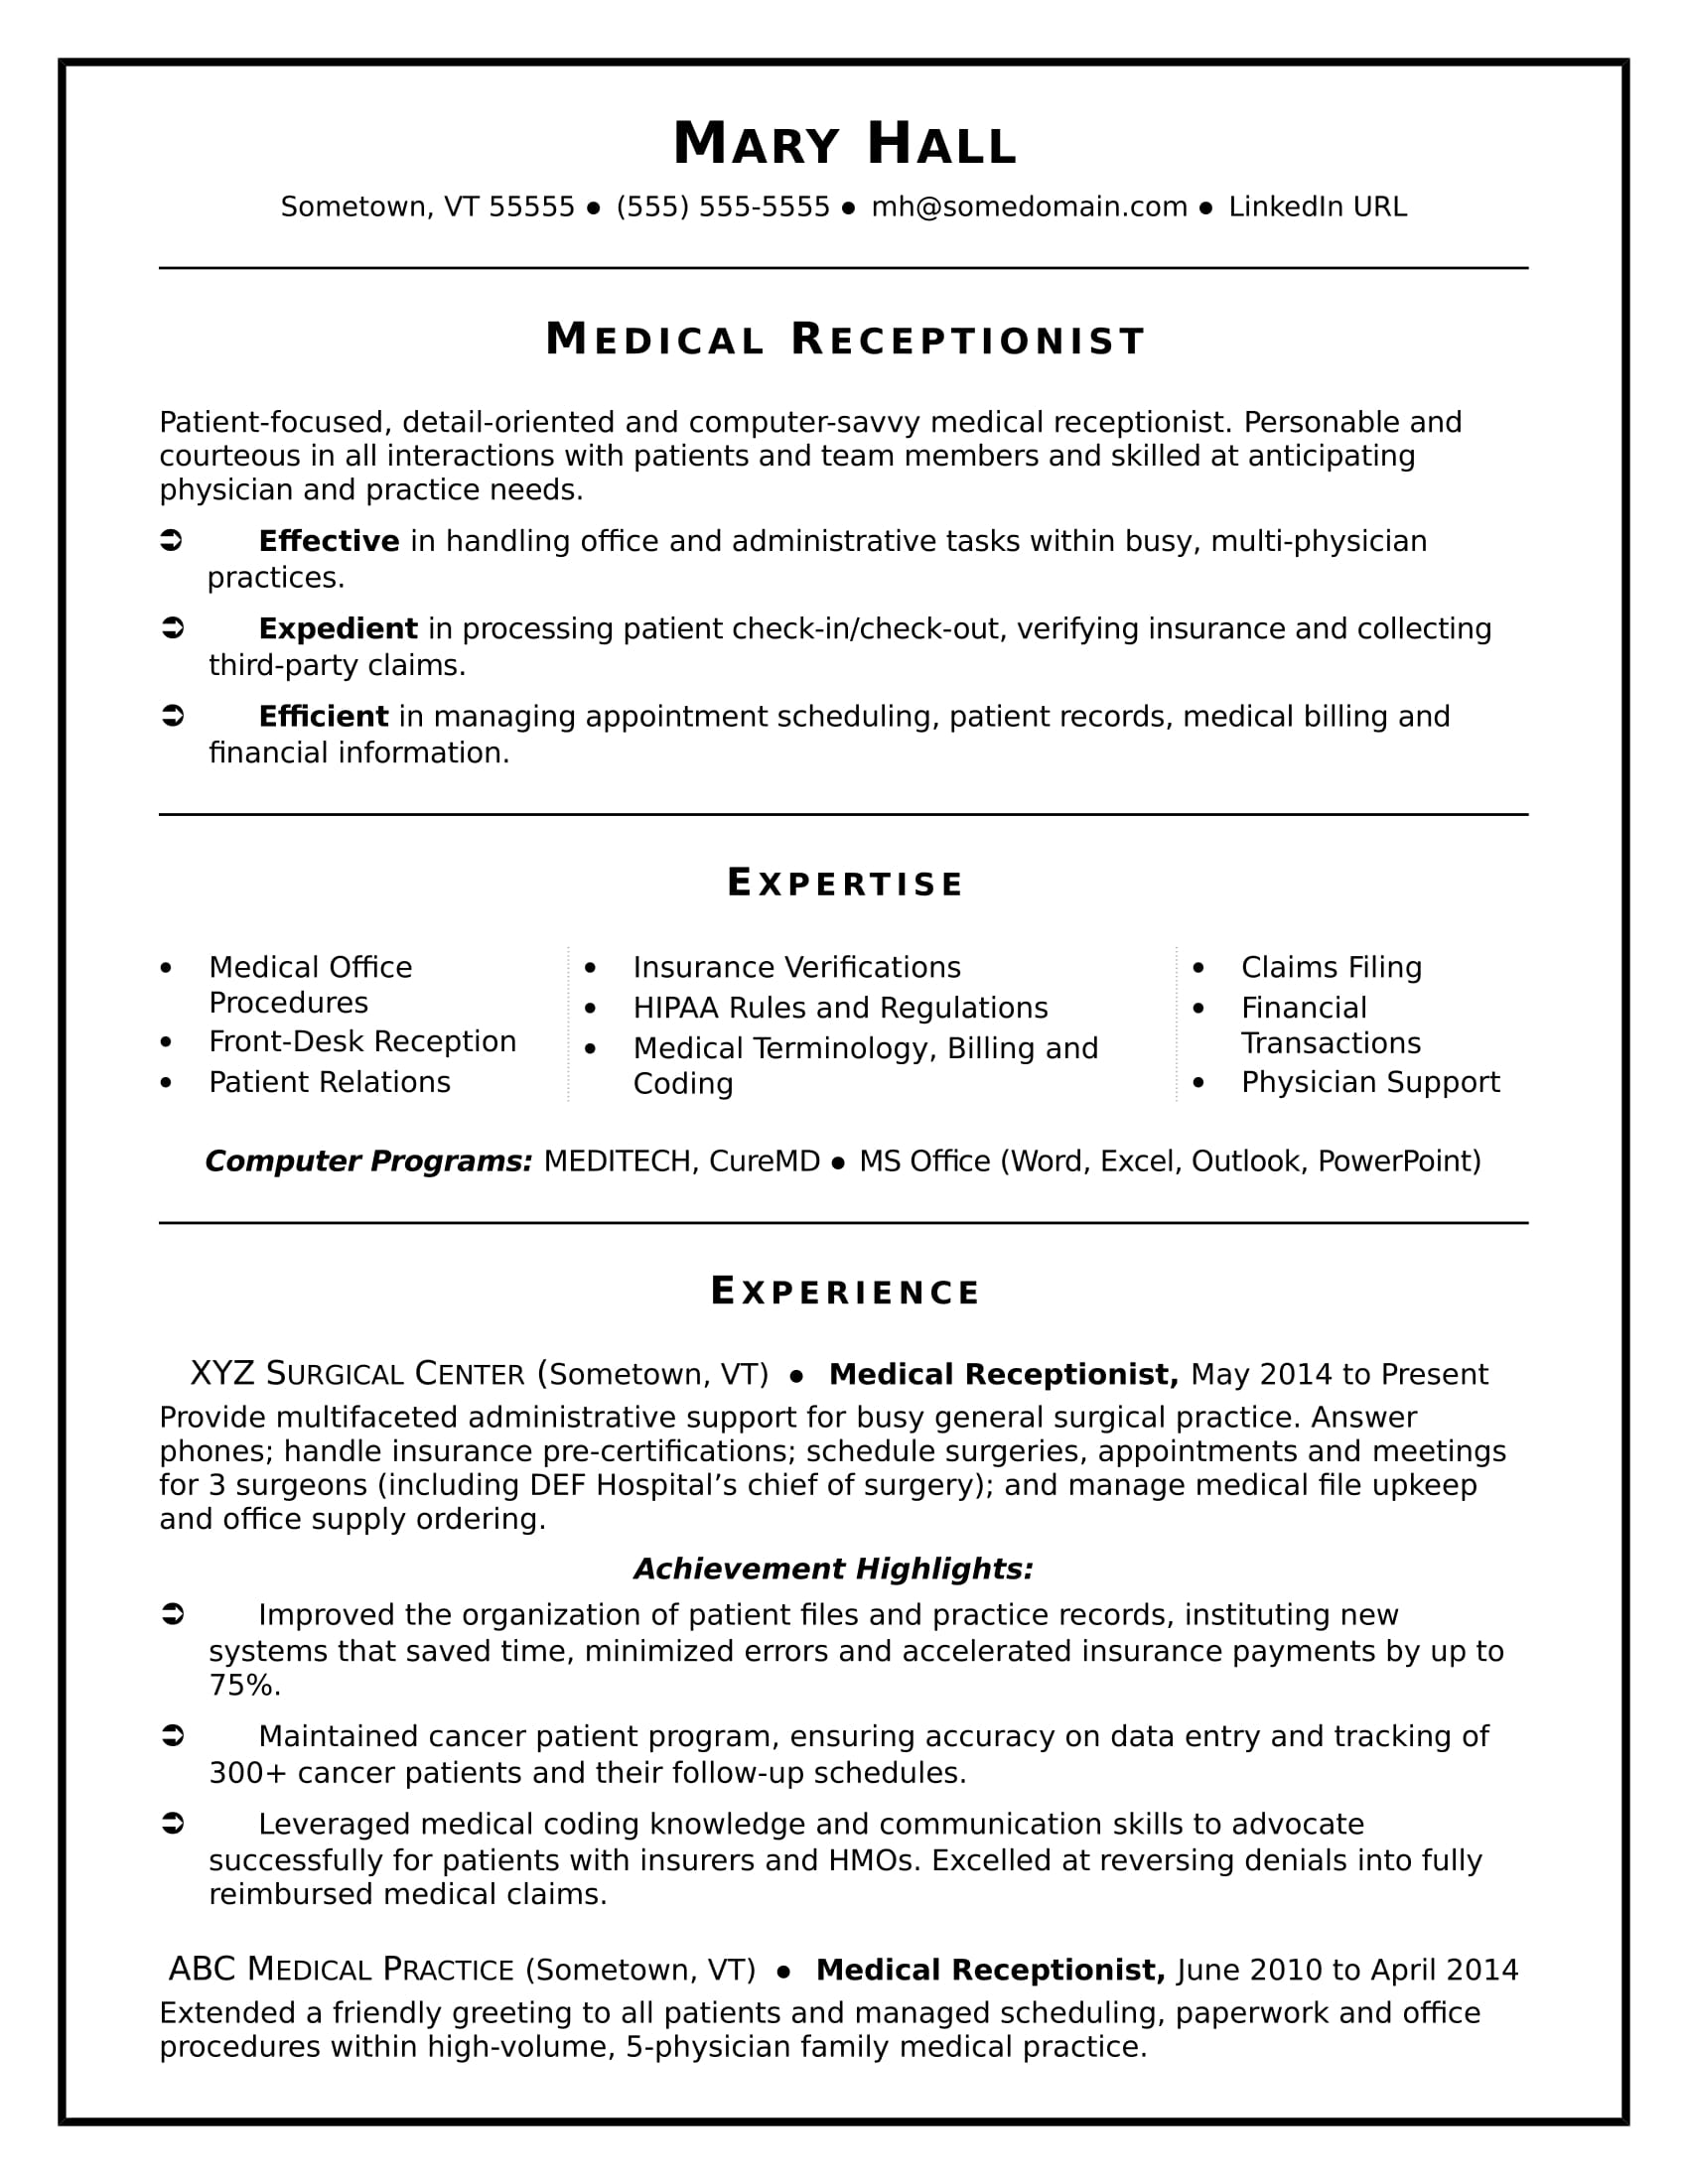 Attractive Medical Receptionist Resume Sample On Medical Receptionist Duties For Resume